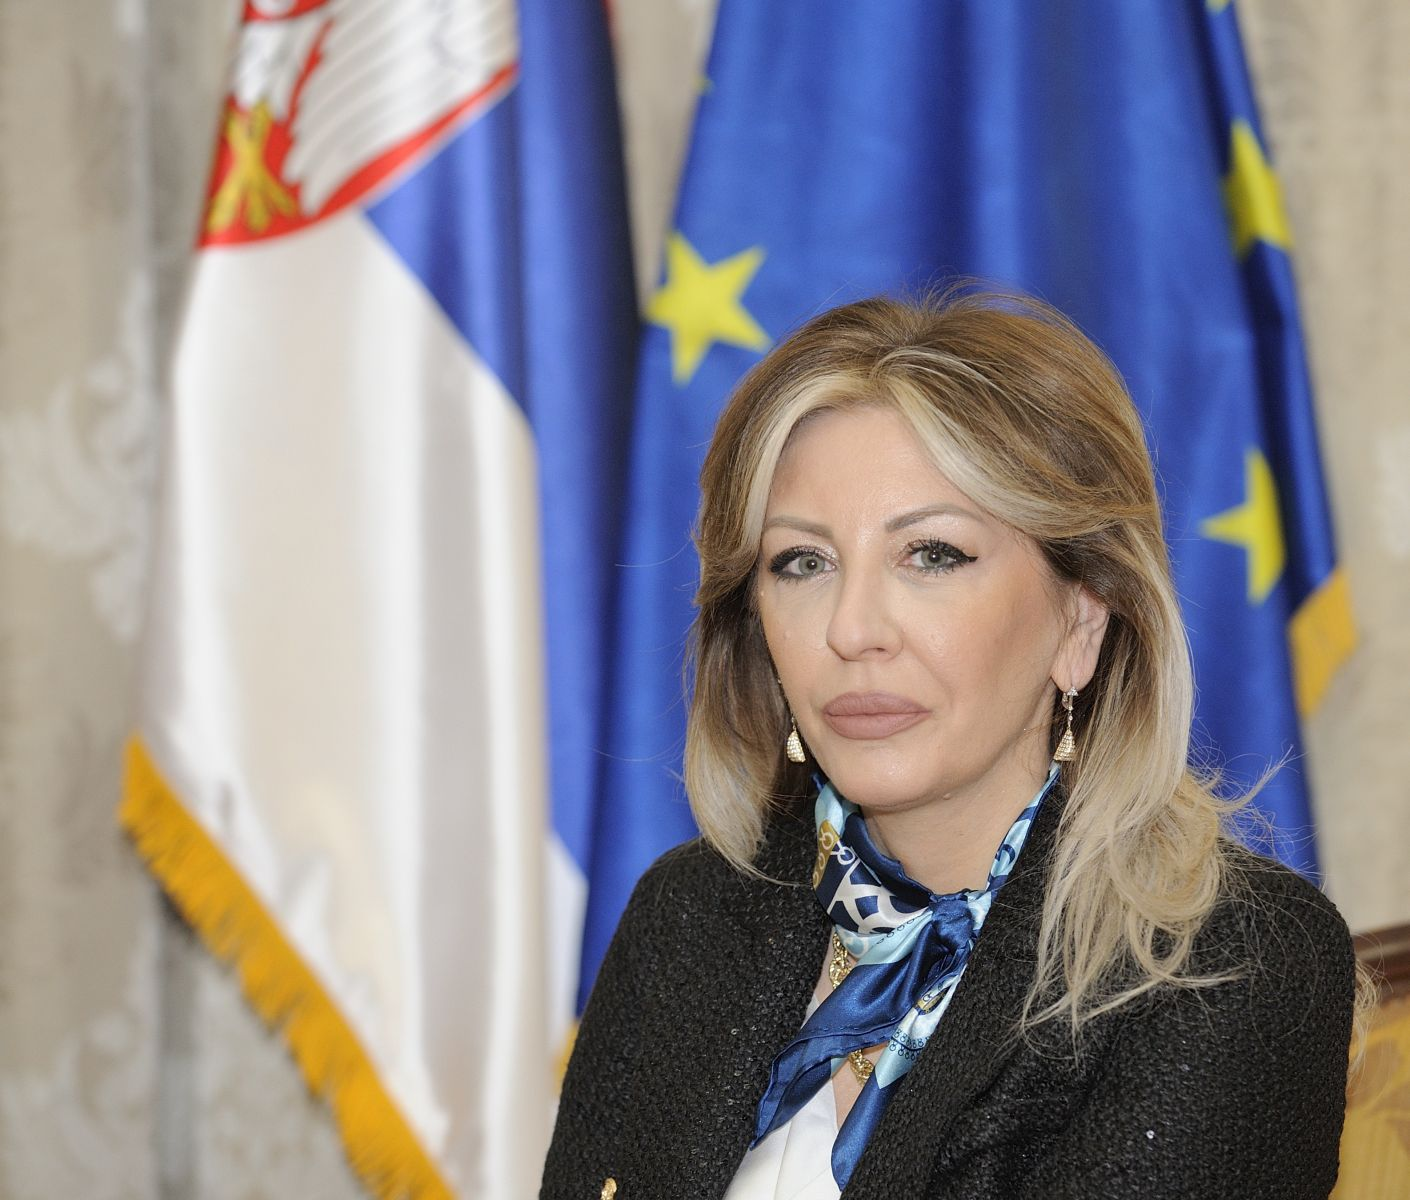 J. Joksimović: What is relevant for us are agreements, not non-papers